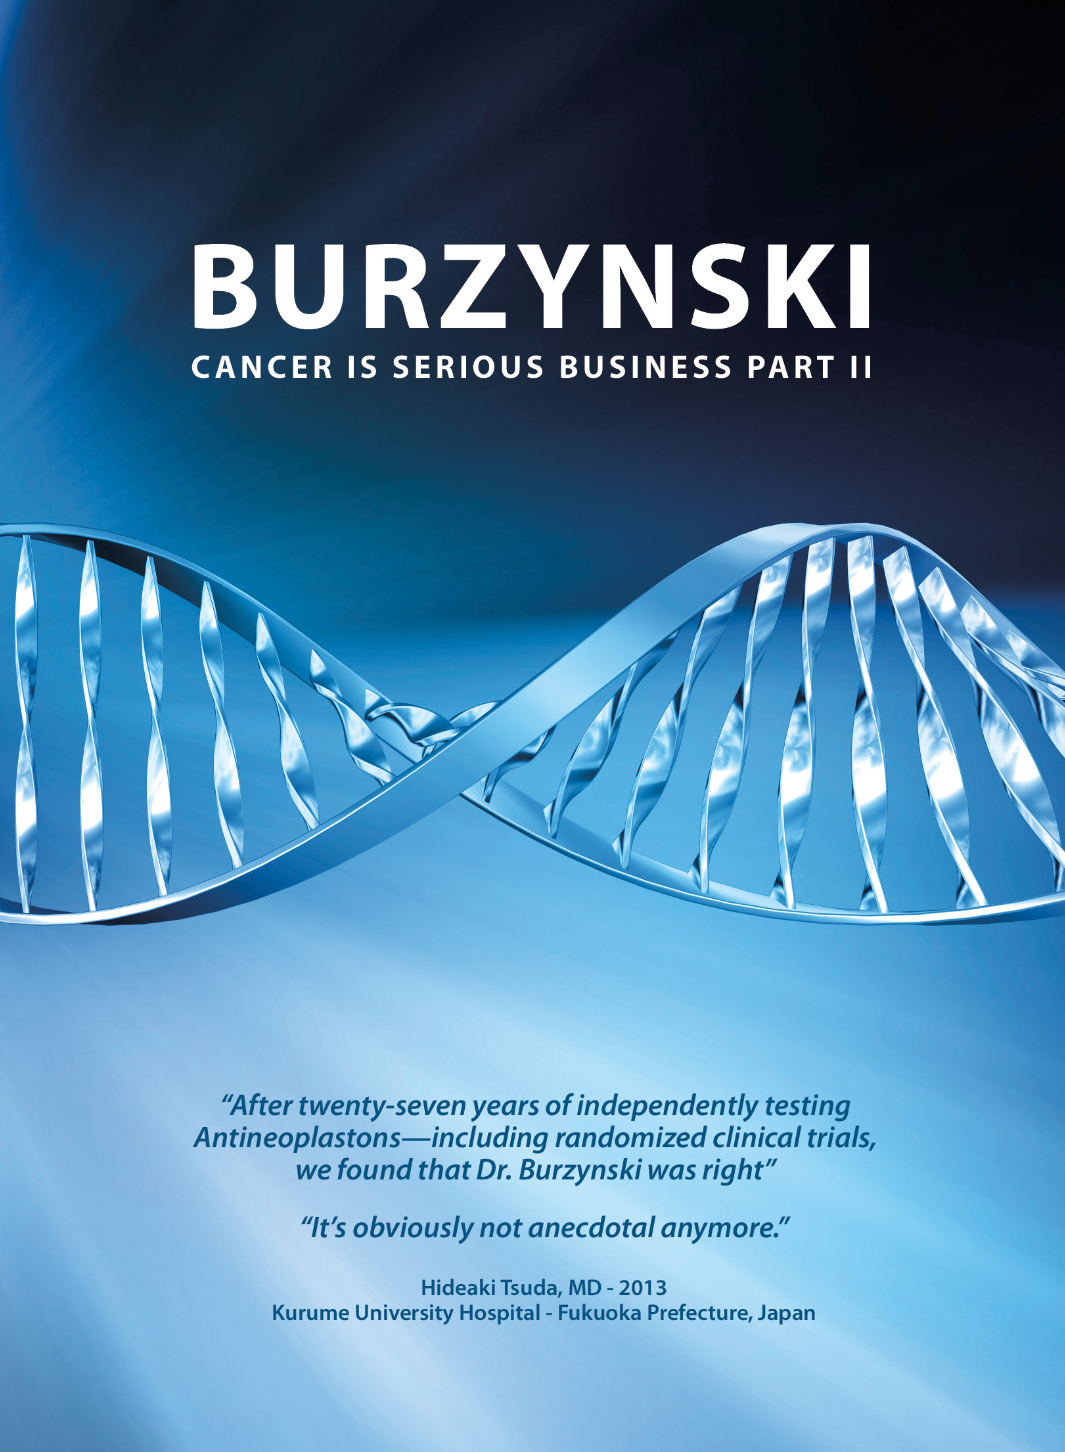 Burzynski The Movie Part 2